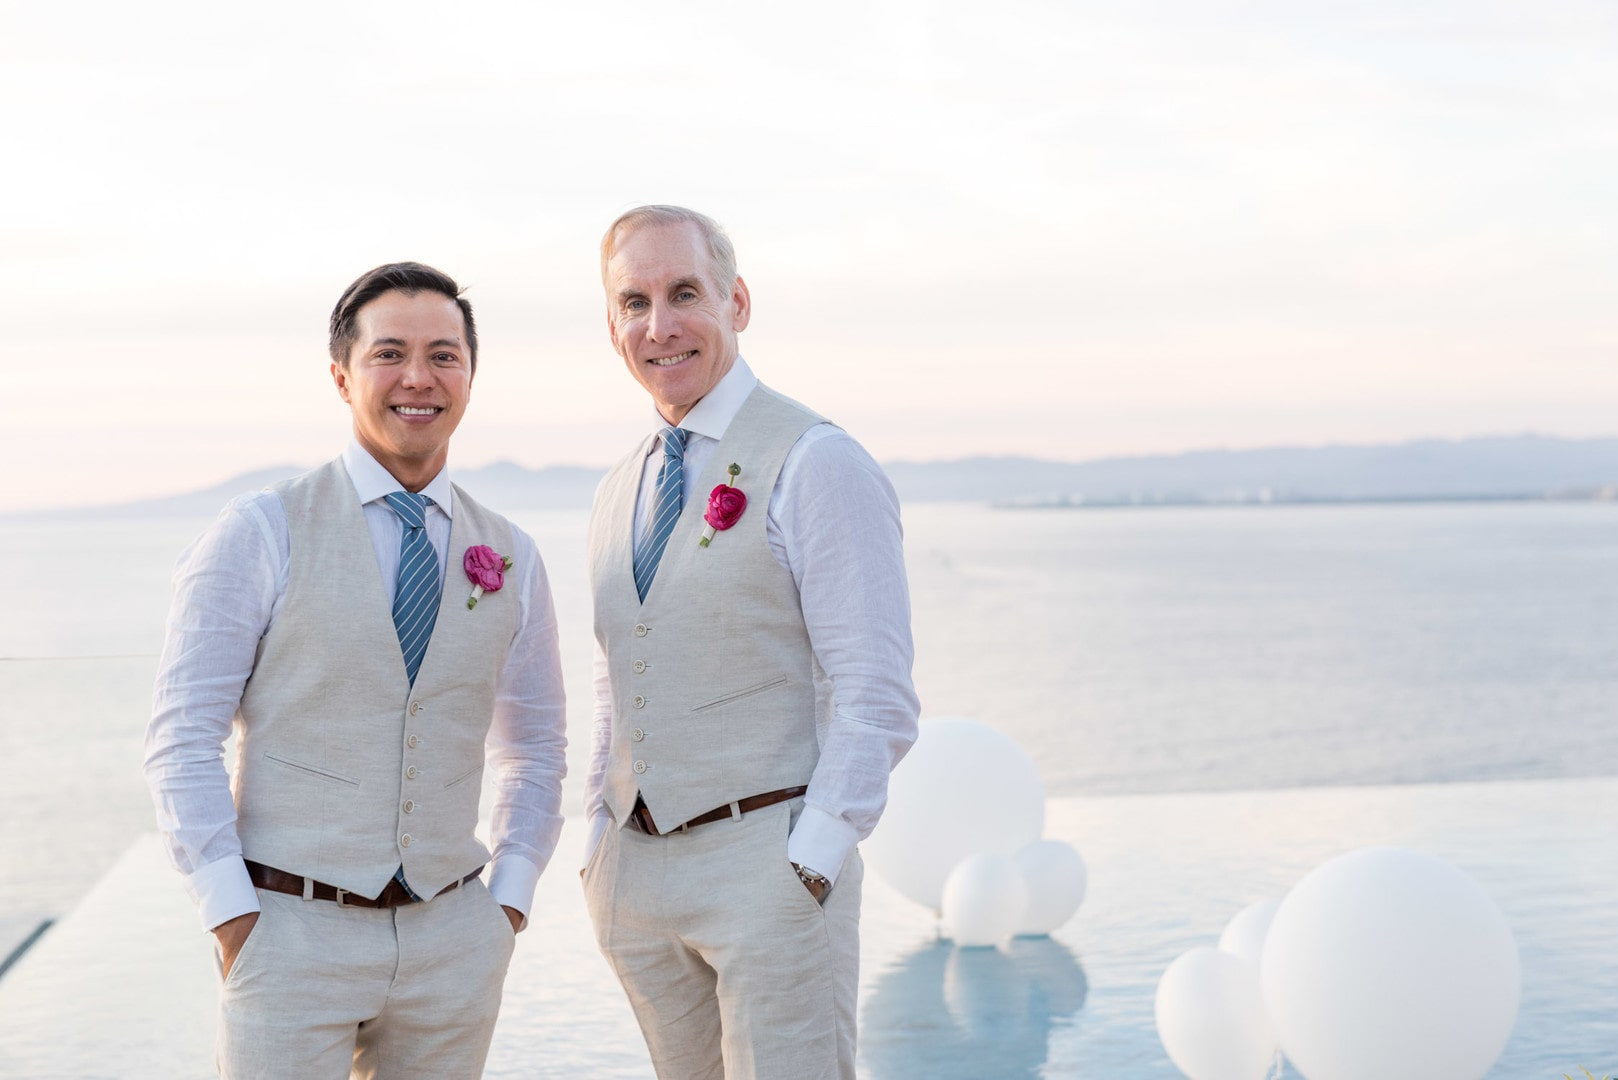 Carlo & Ron's Modern Tropical White Wedding In Puerto Vallarta, Photography by Joann Arruda Photography for Destination wedding network Adriana Weddings